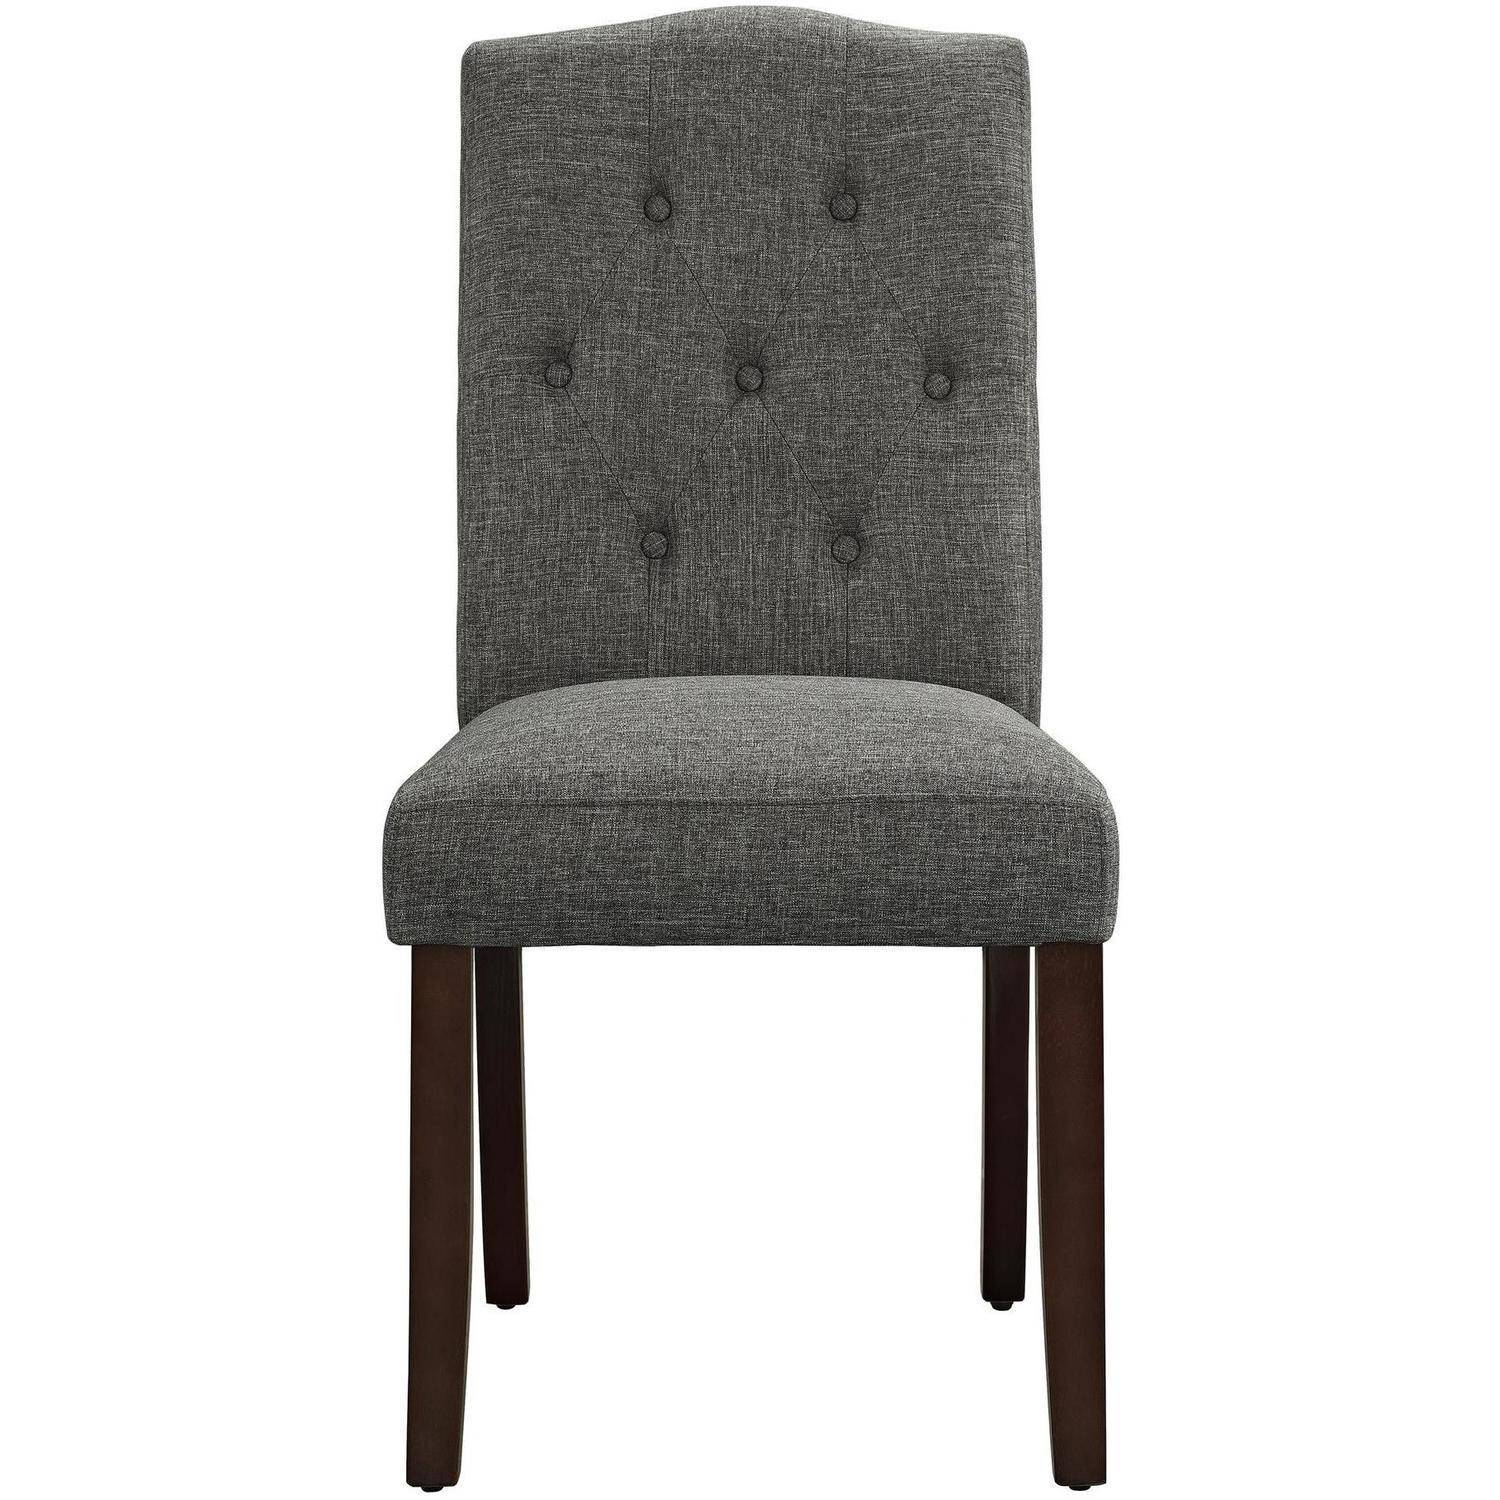 Dining Room Tufted Dining Chair Upholstered Side Chairs Upholstered Kitchen Chairs